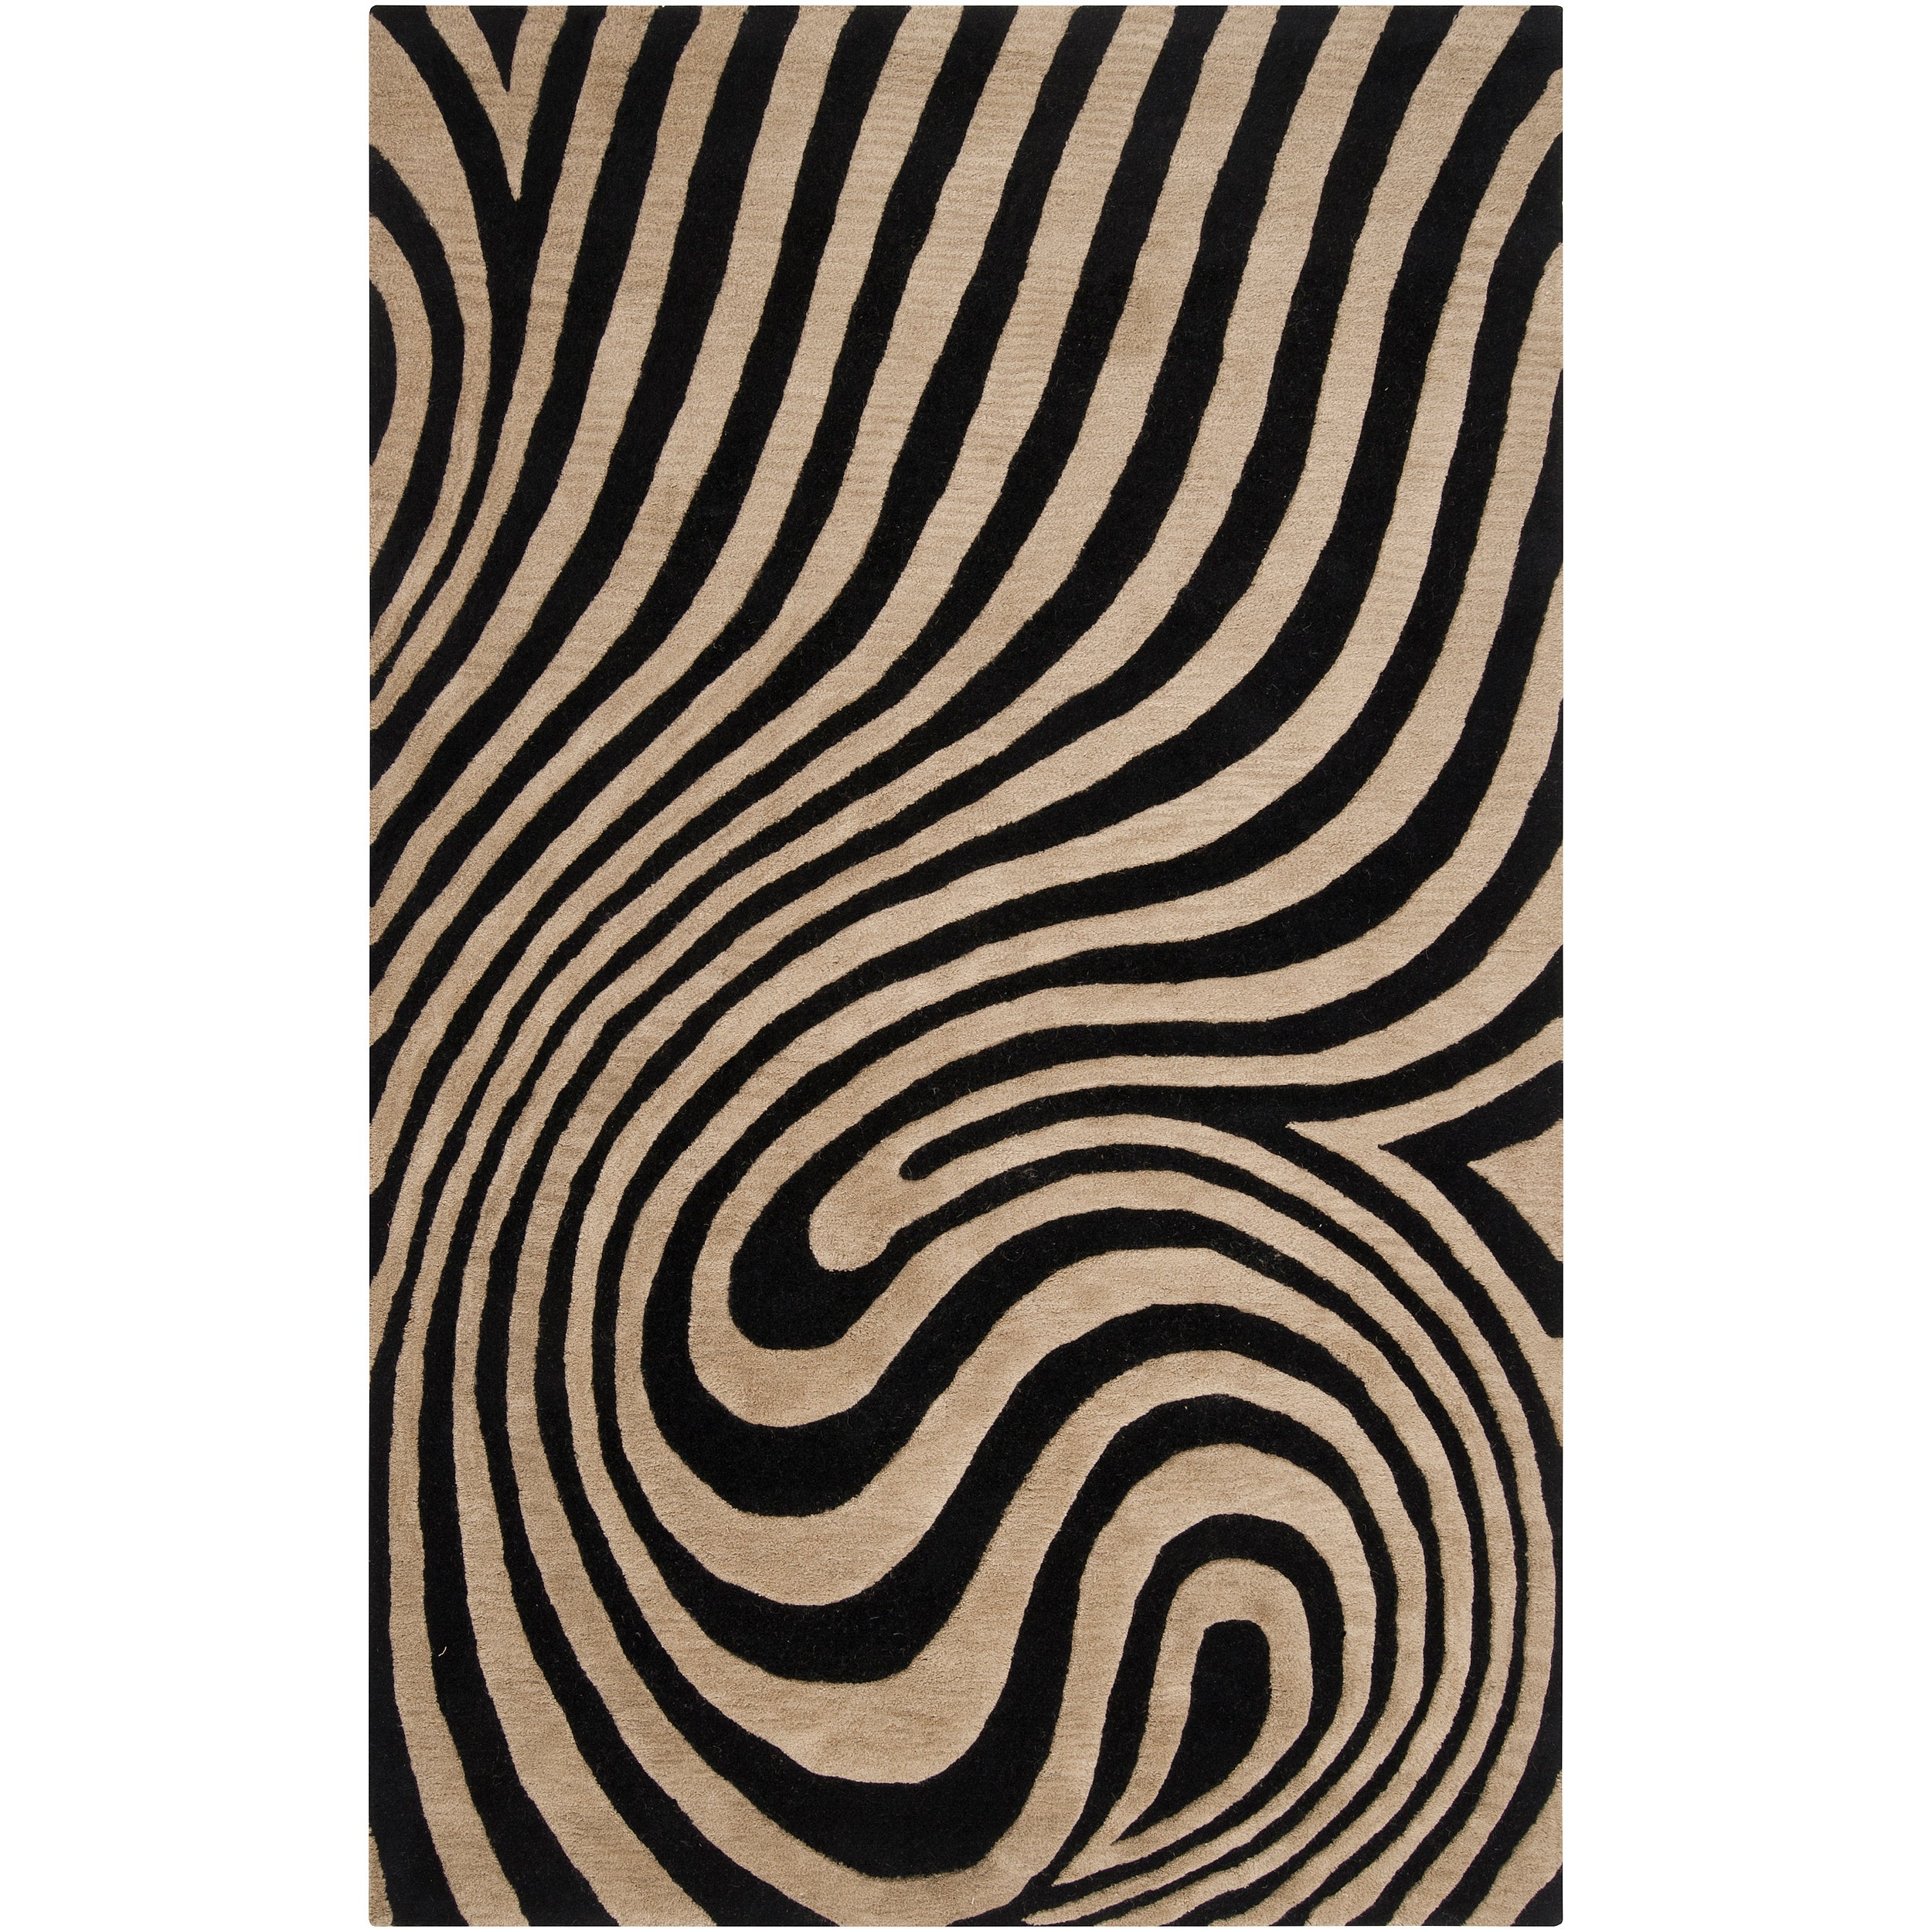 Hand-tufted Contemporary Black/Beige Swirl Bramble Wool Abstract Rug (8' x 10')